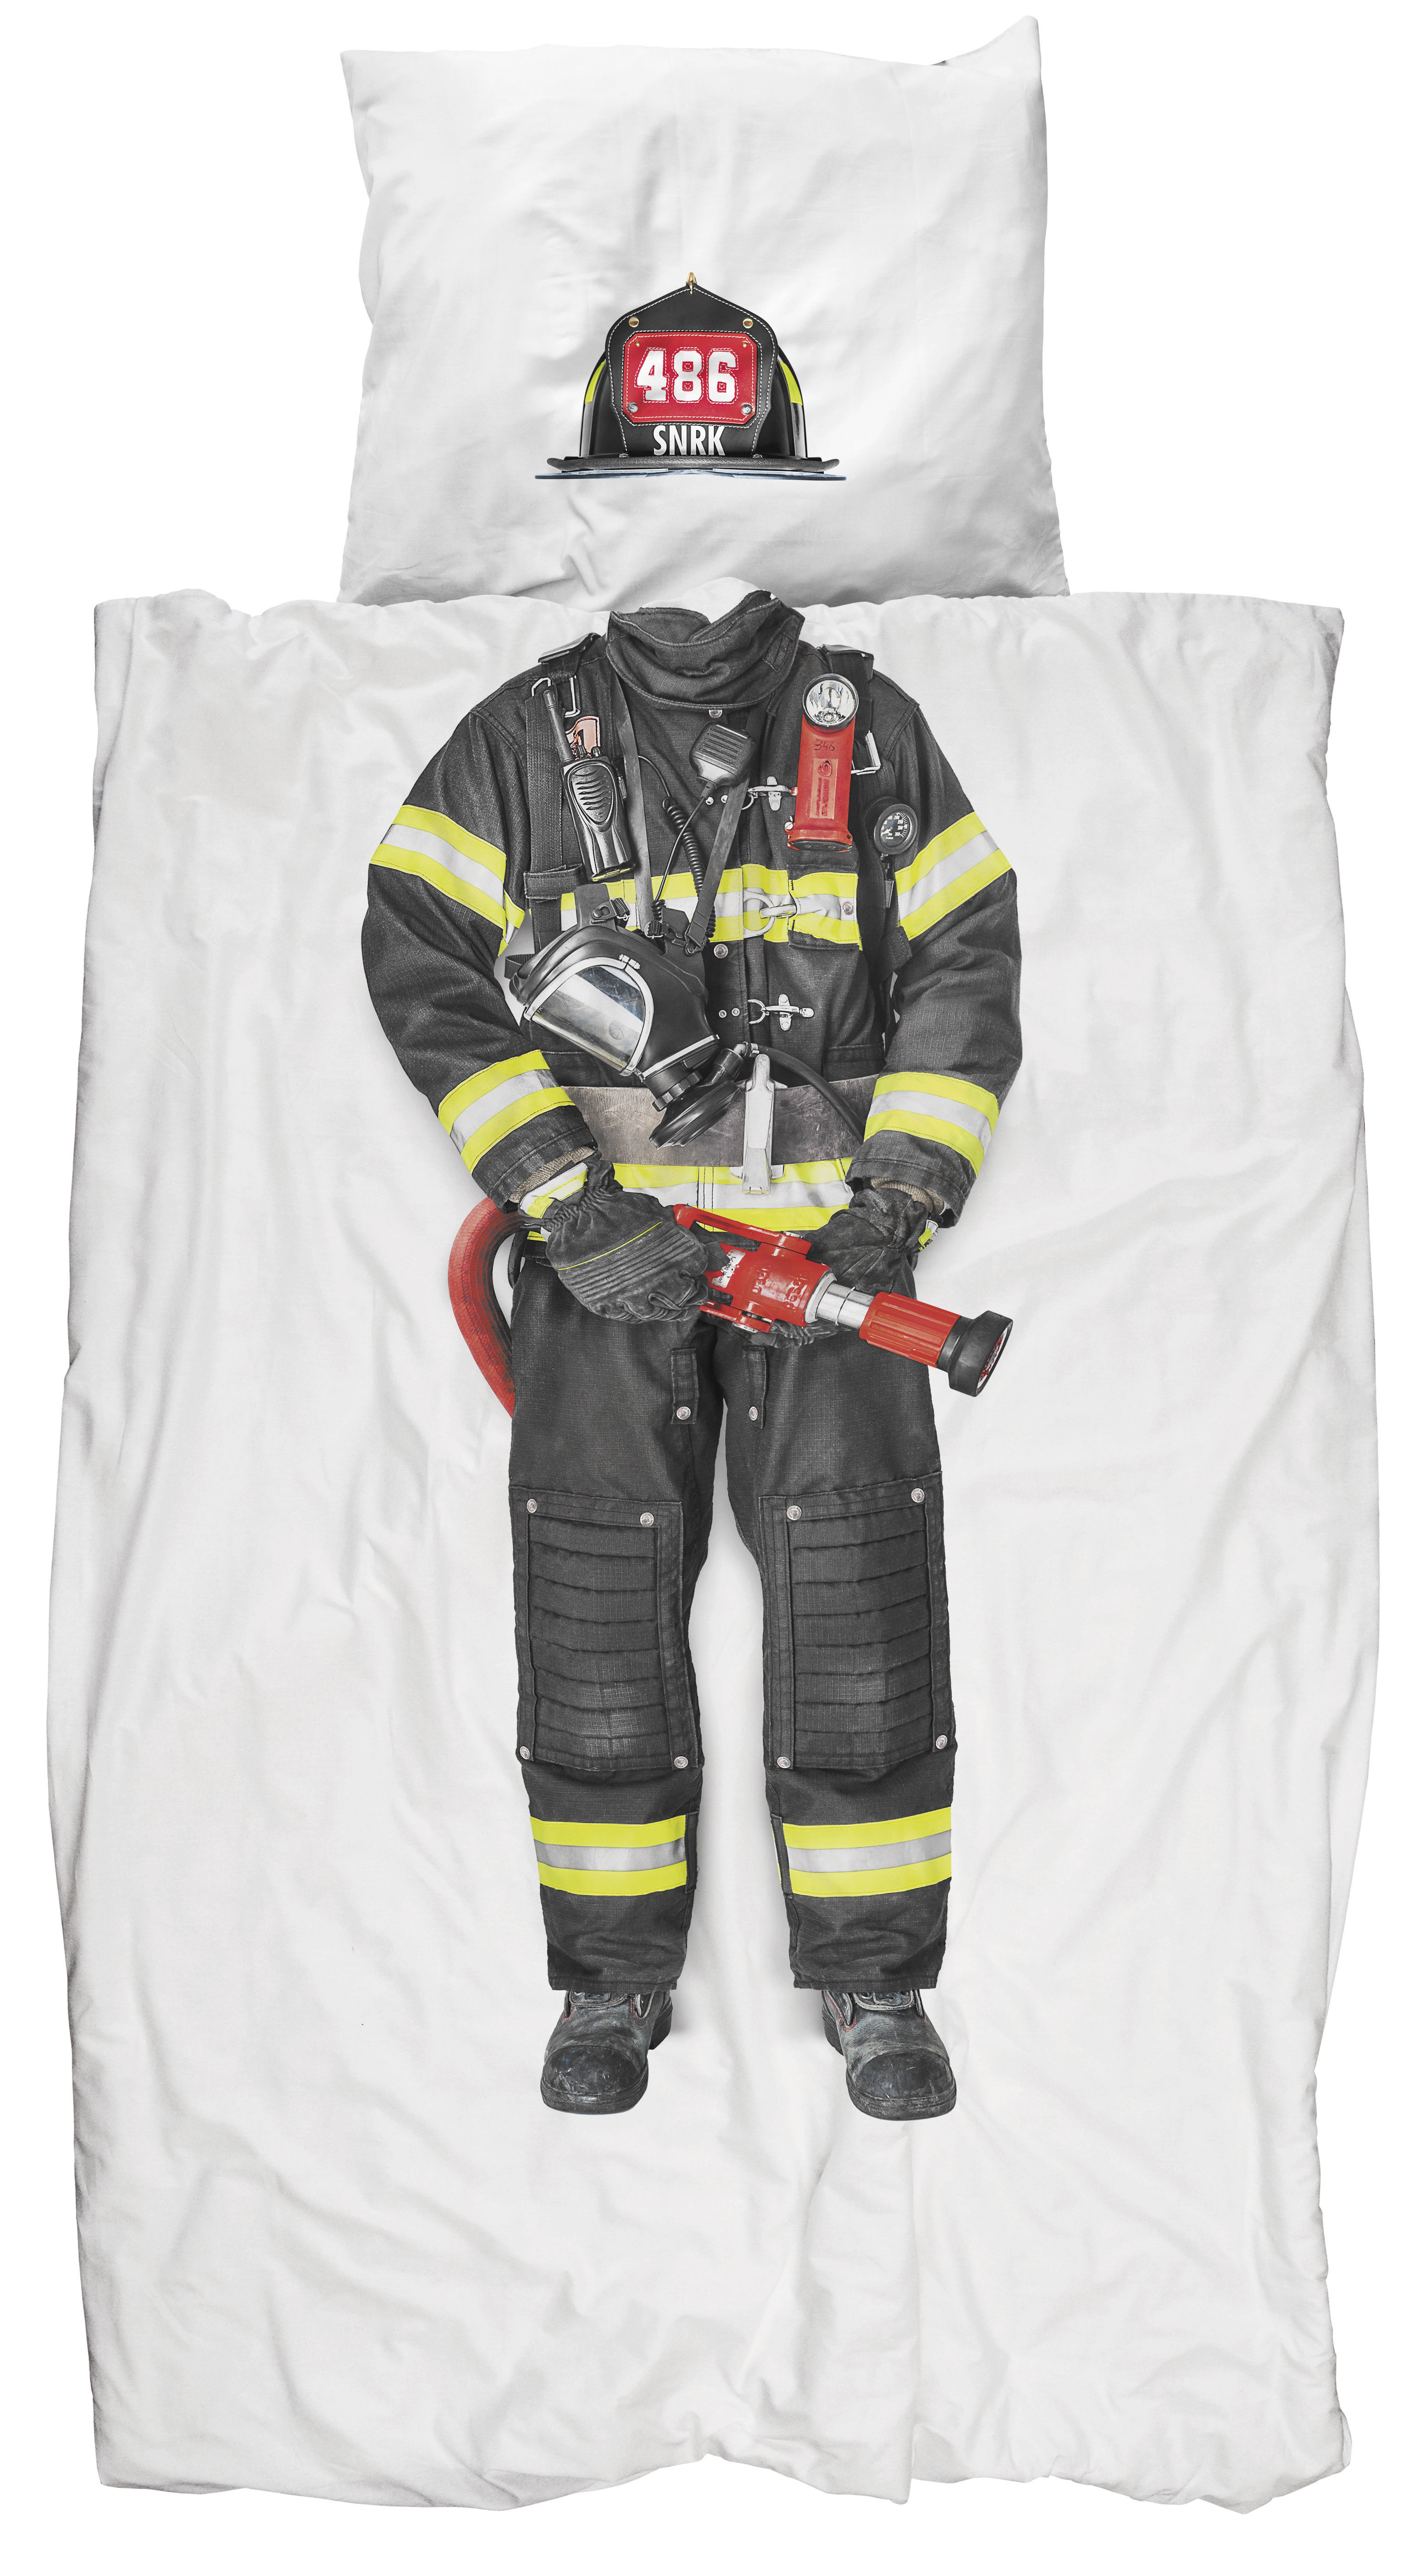 Decoration - Bedding & Bath Towels - Firefighter Bedlinen set for 1 person - 135 x 200 cm by Snurk - Firefighter - Cotton percale